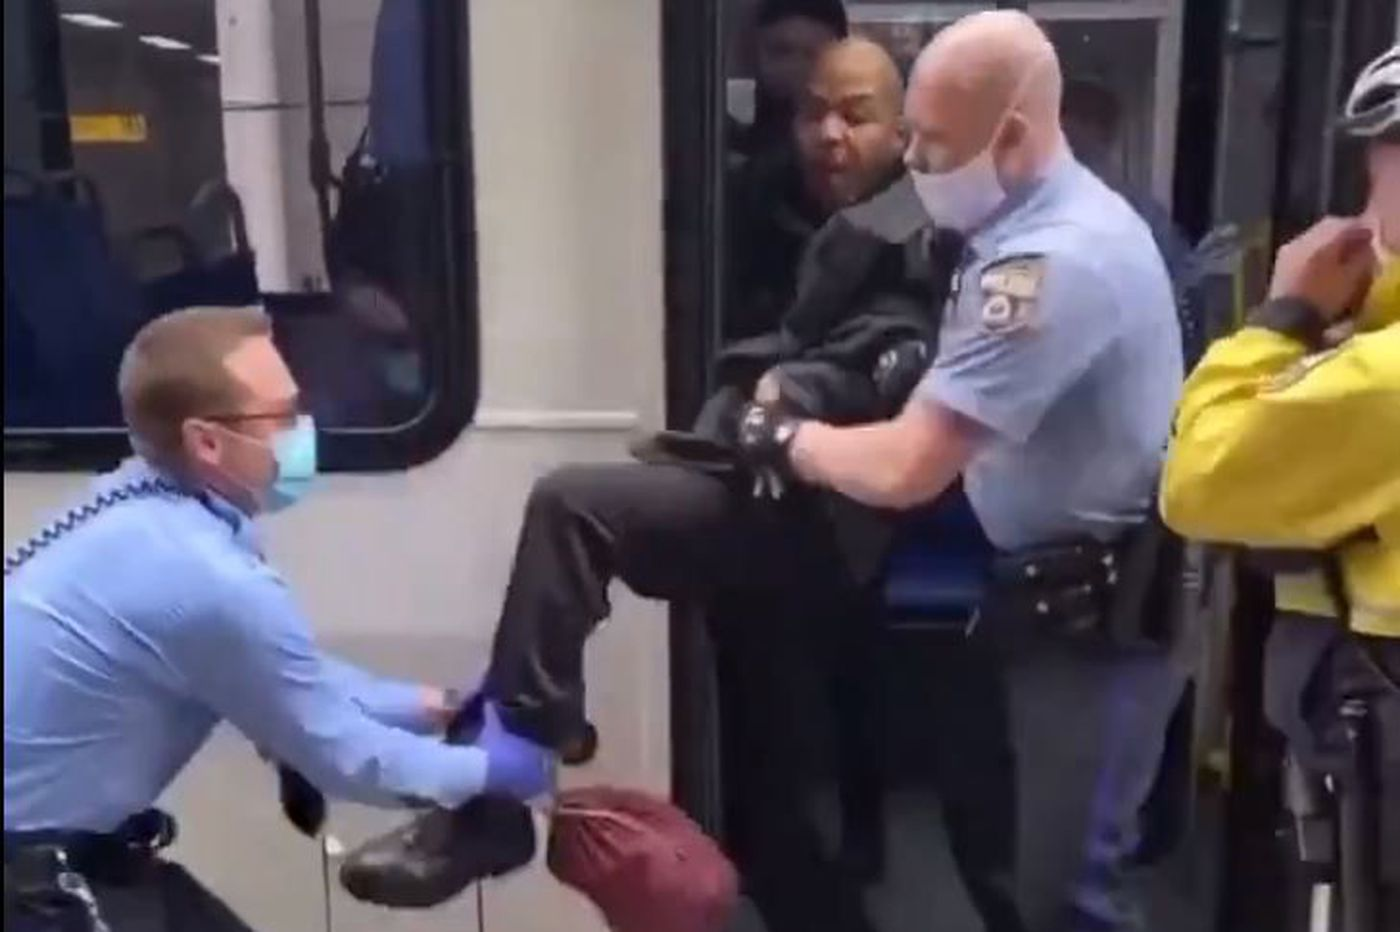 After a viral video shows a man being dragged off a bus, SEPTA reverses its coronavirus face mask requirement